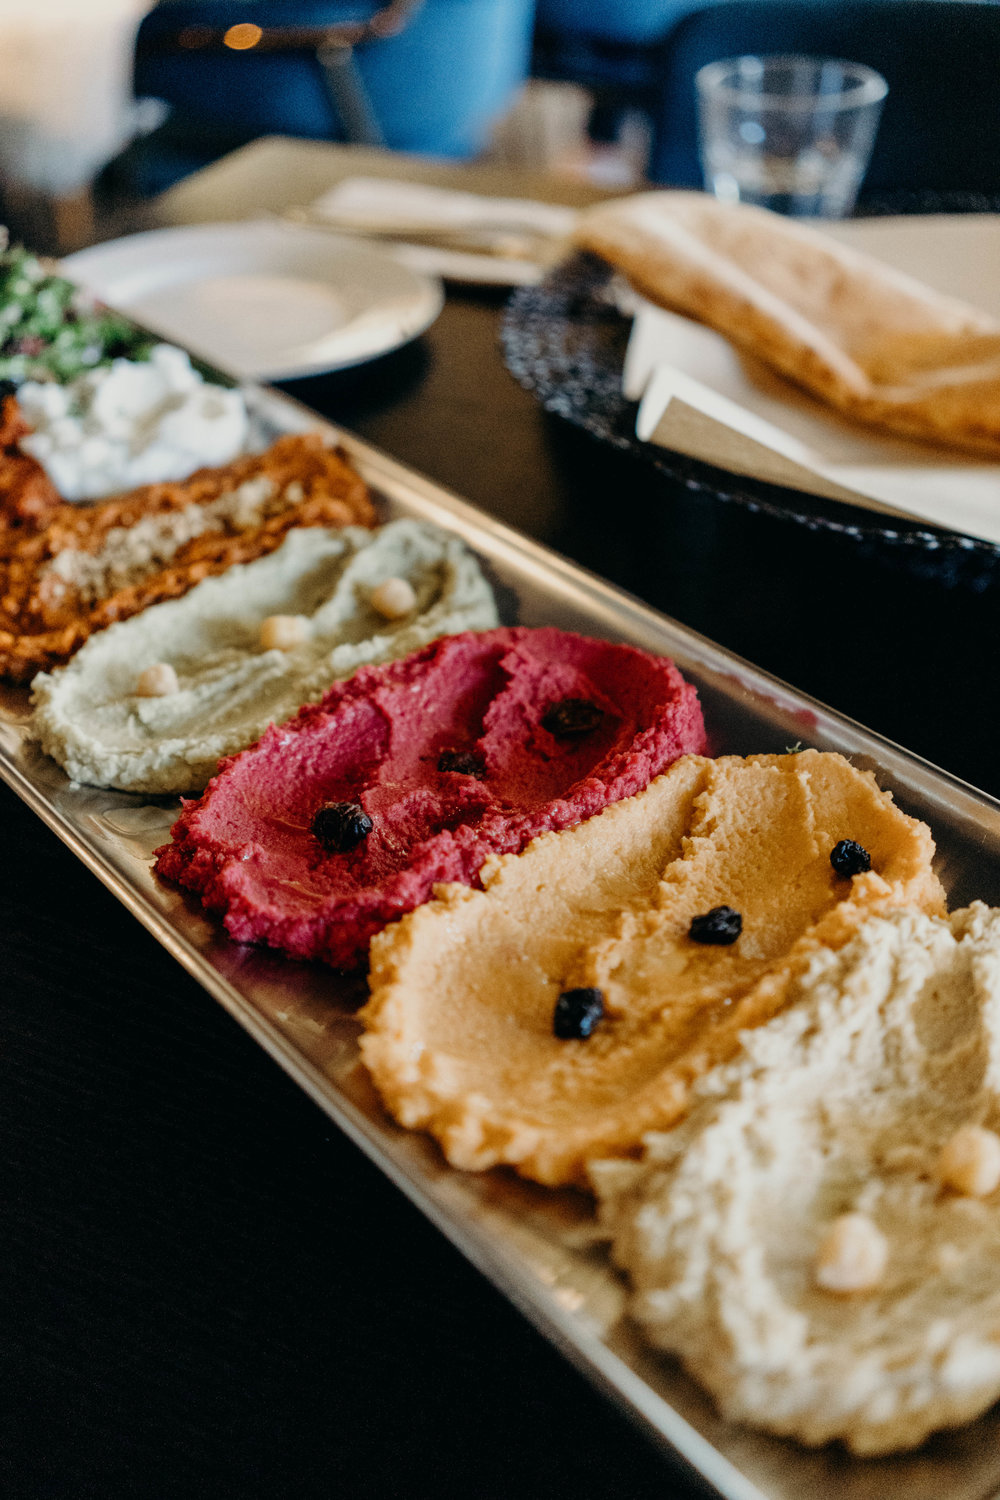 A Hummus Platter for Two in Itaewon   On the Street Where We Live (aretherelilactrees.com)  Grill Doha, Seoul, South Korea